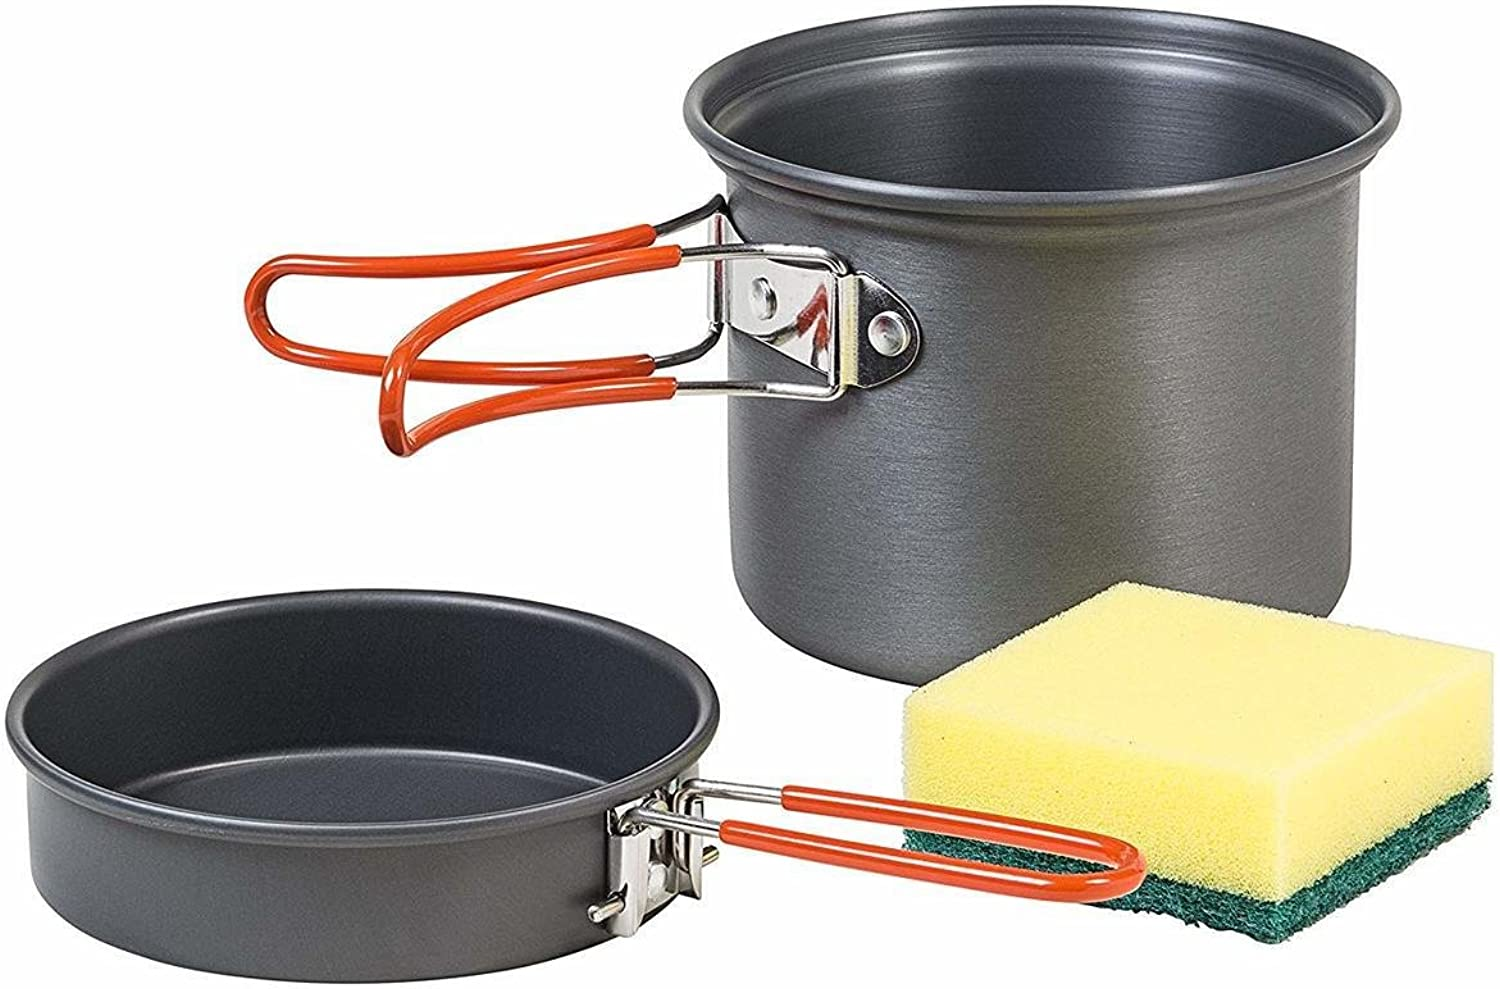 AceCamp Solo Cooking Set Hard-Anodized Aluminum